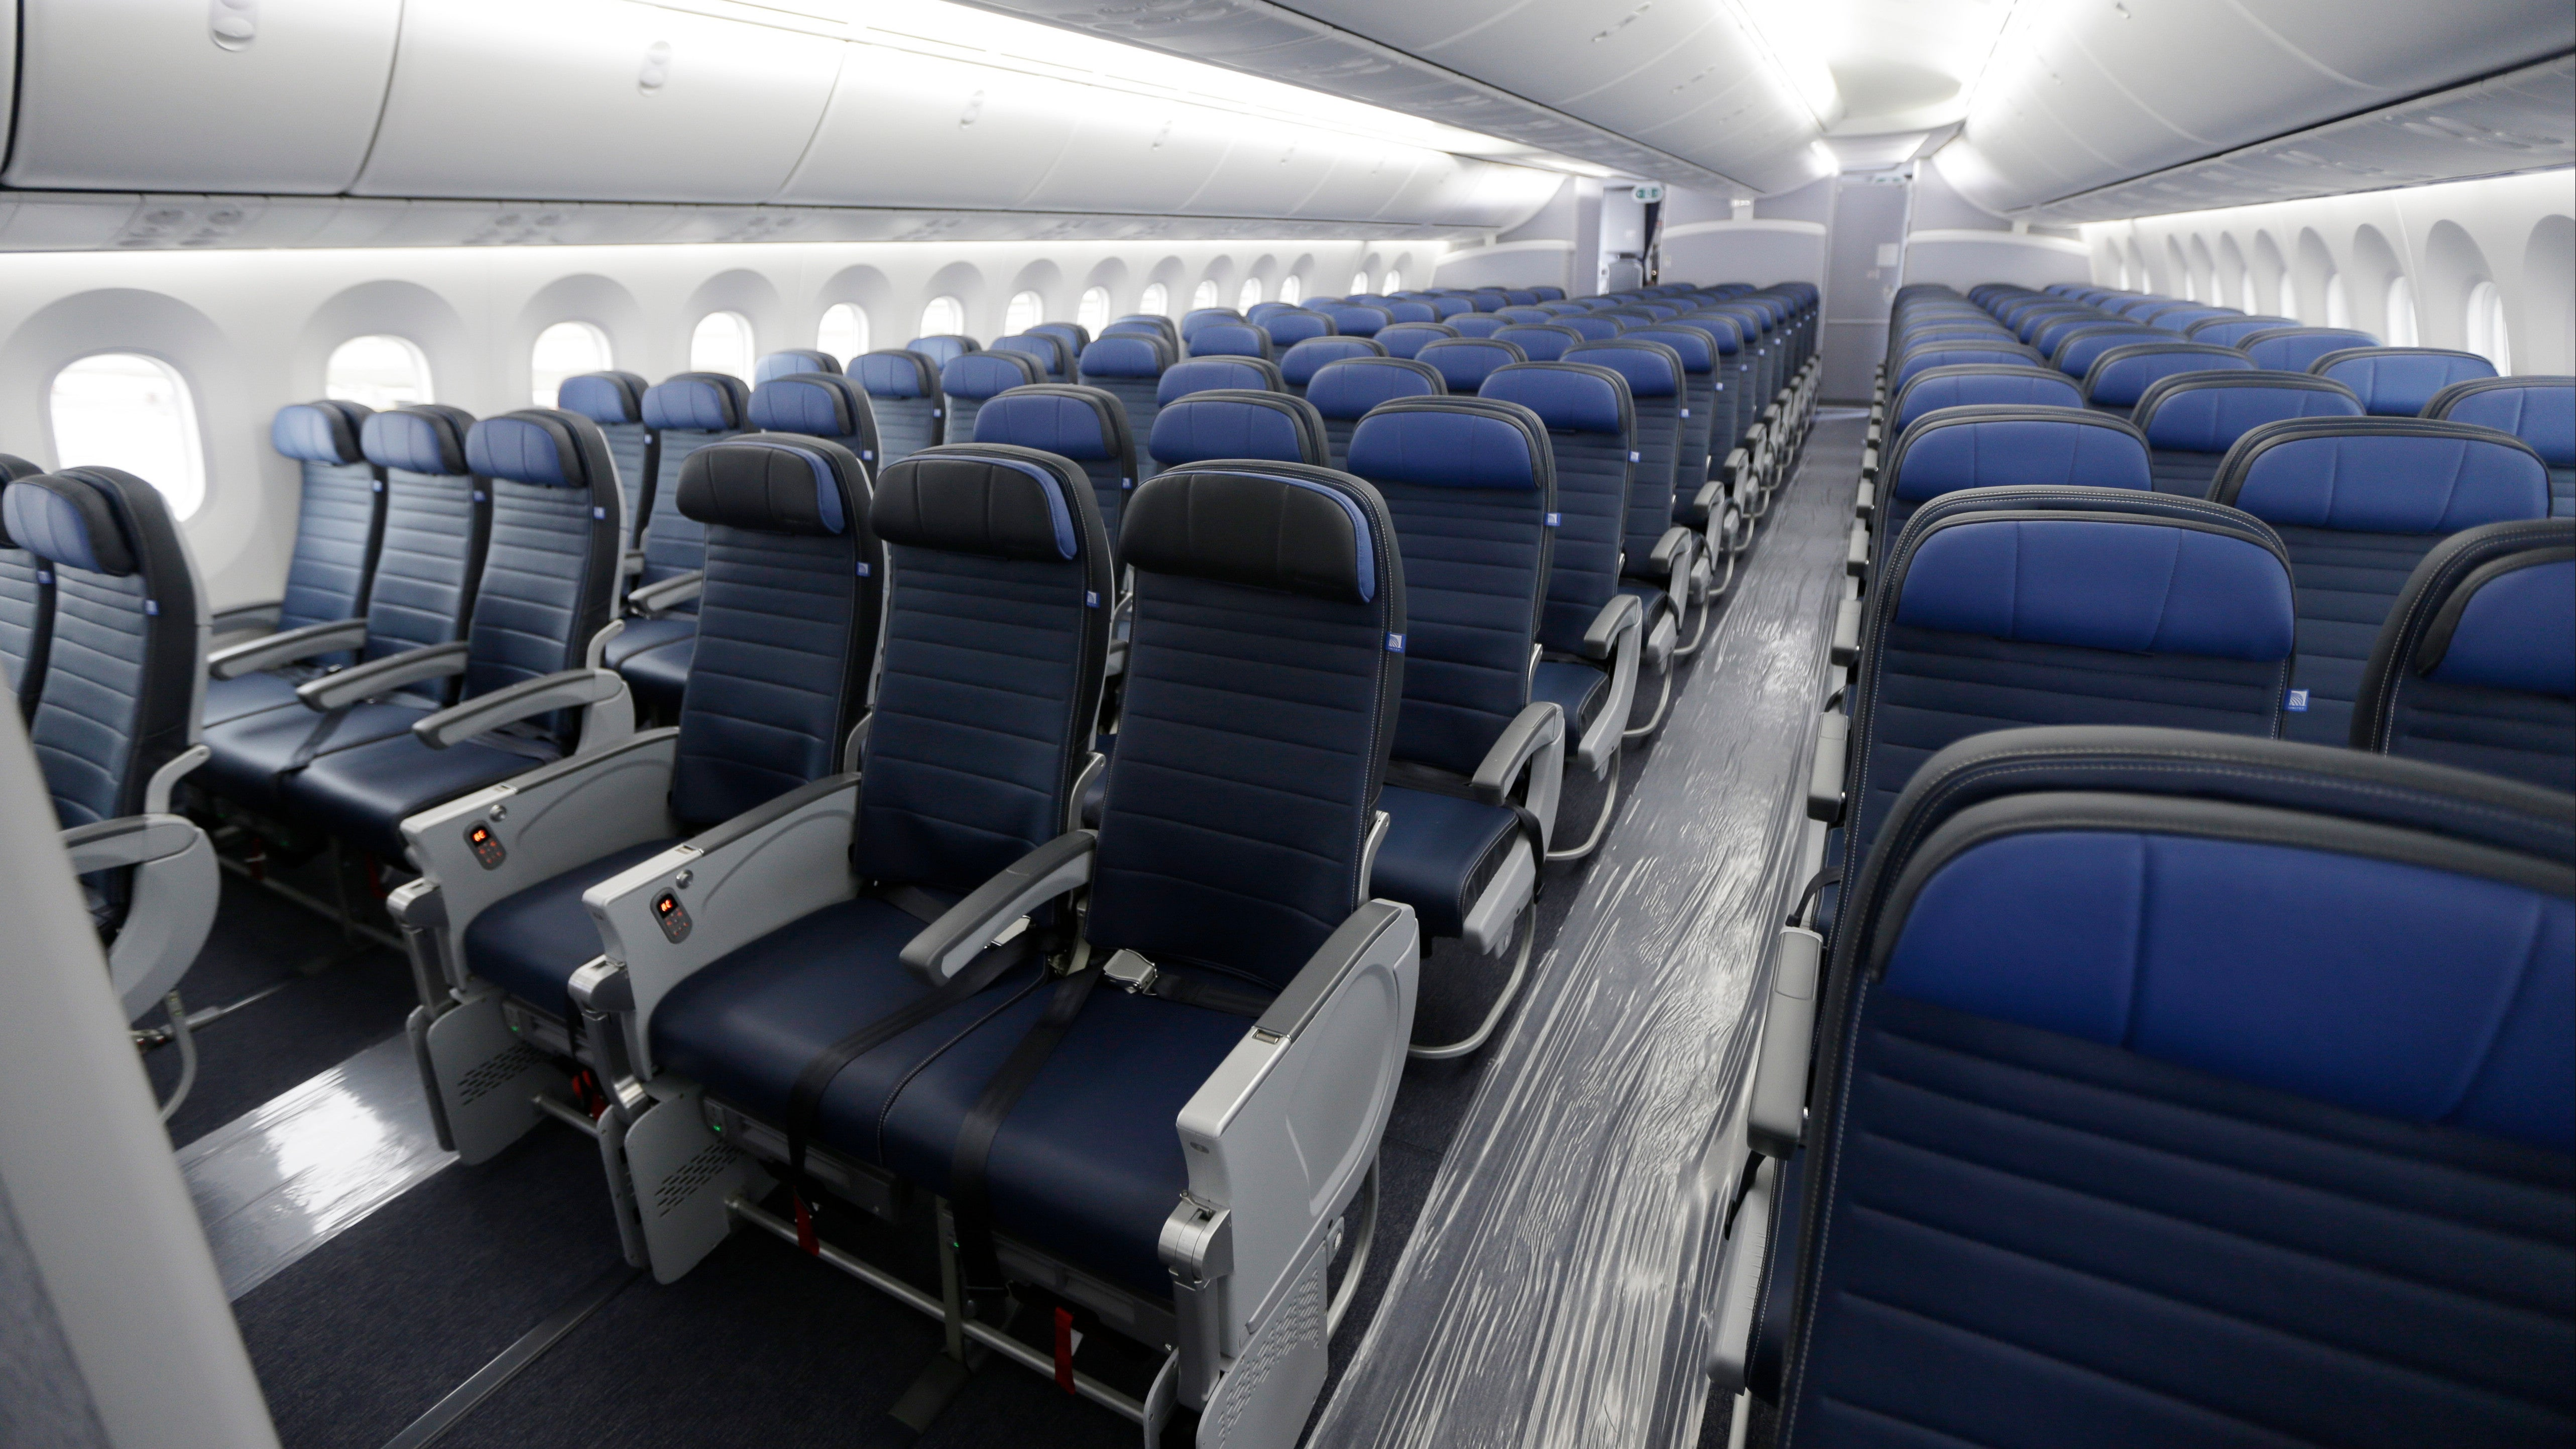 United And Delta Cover Their Seatback Cameras In Bid To Stop Freaking You Out